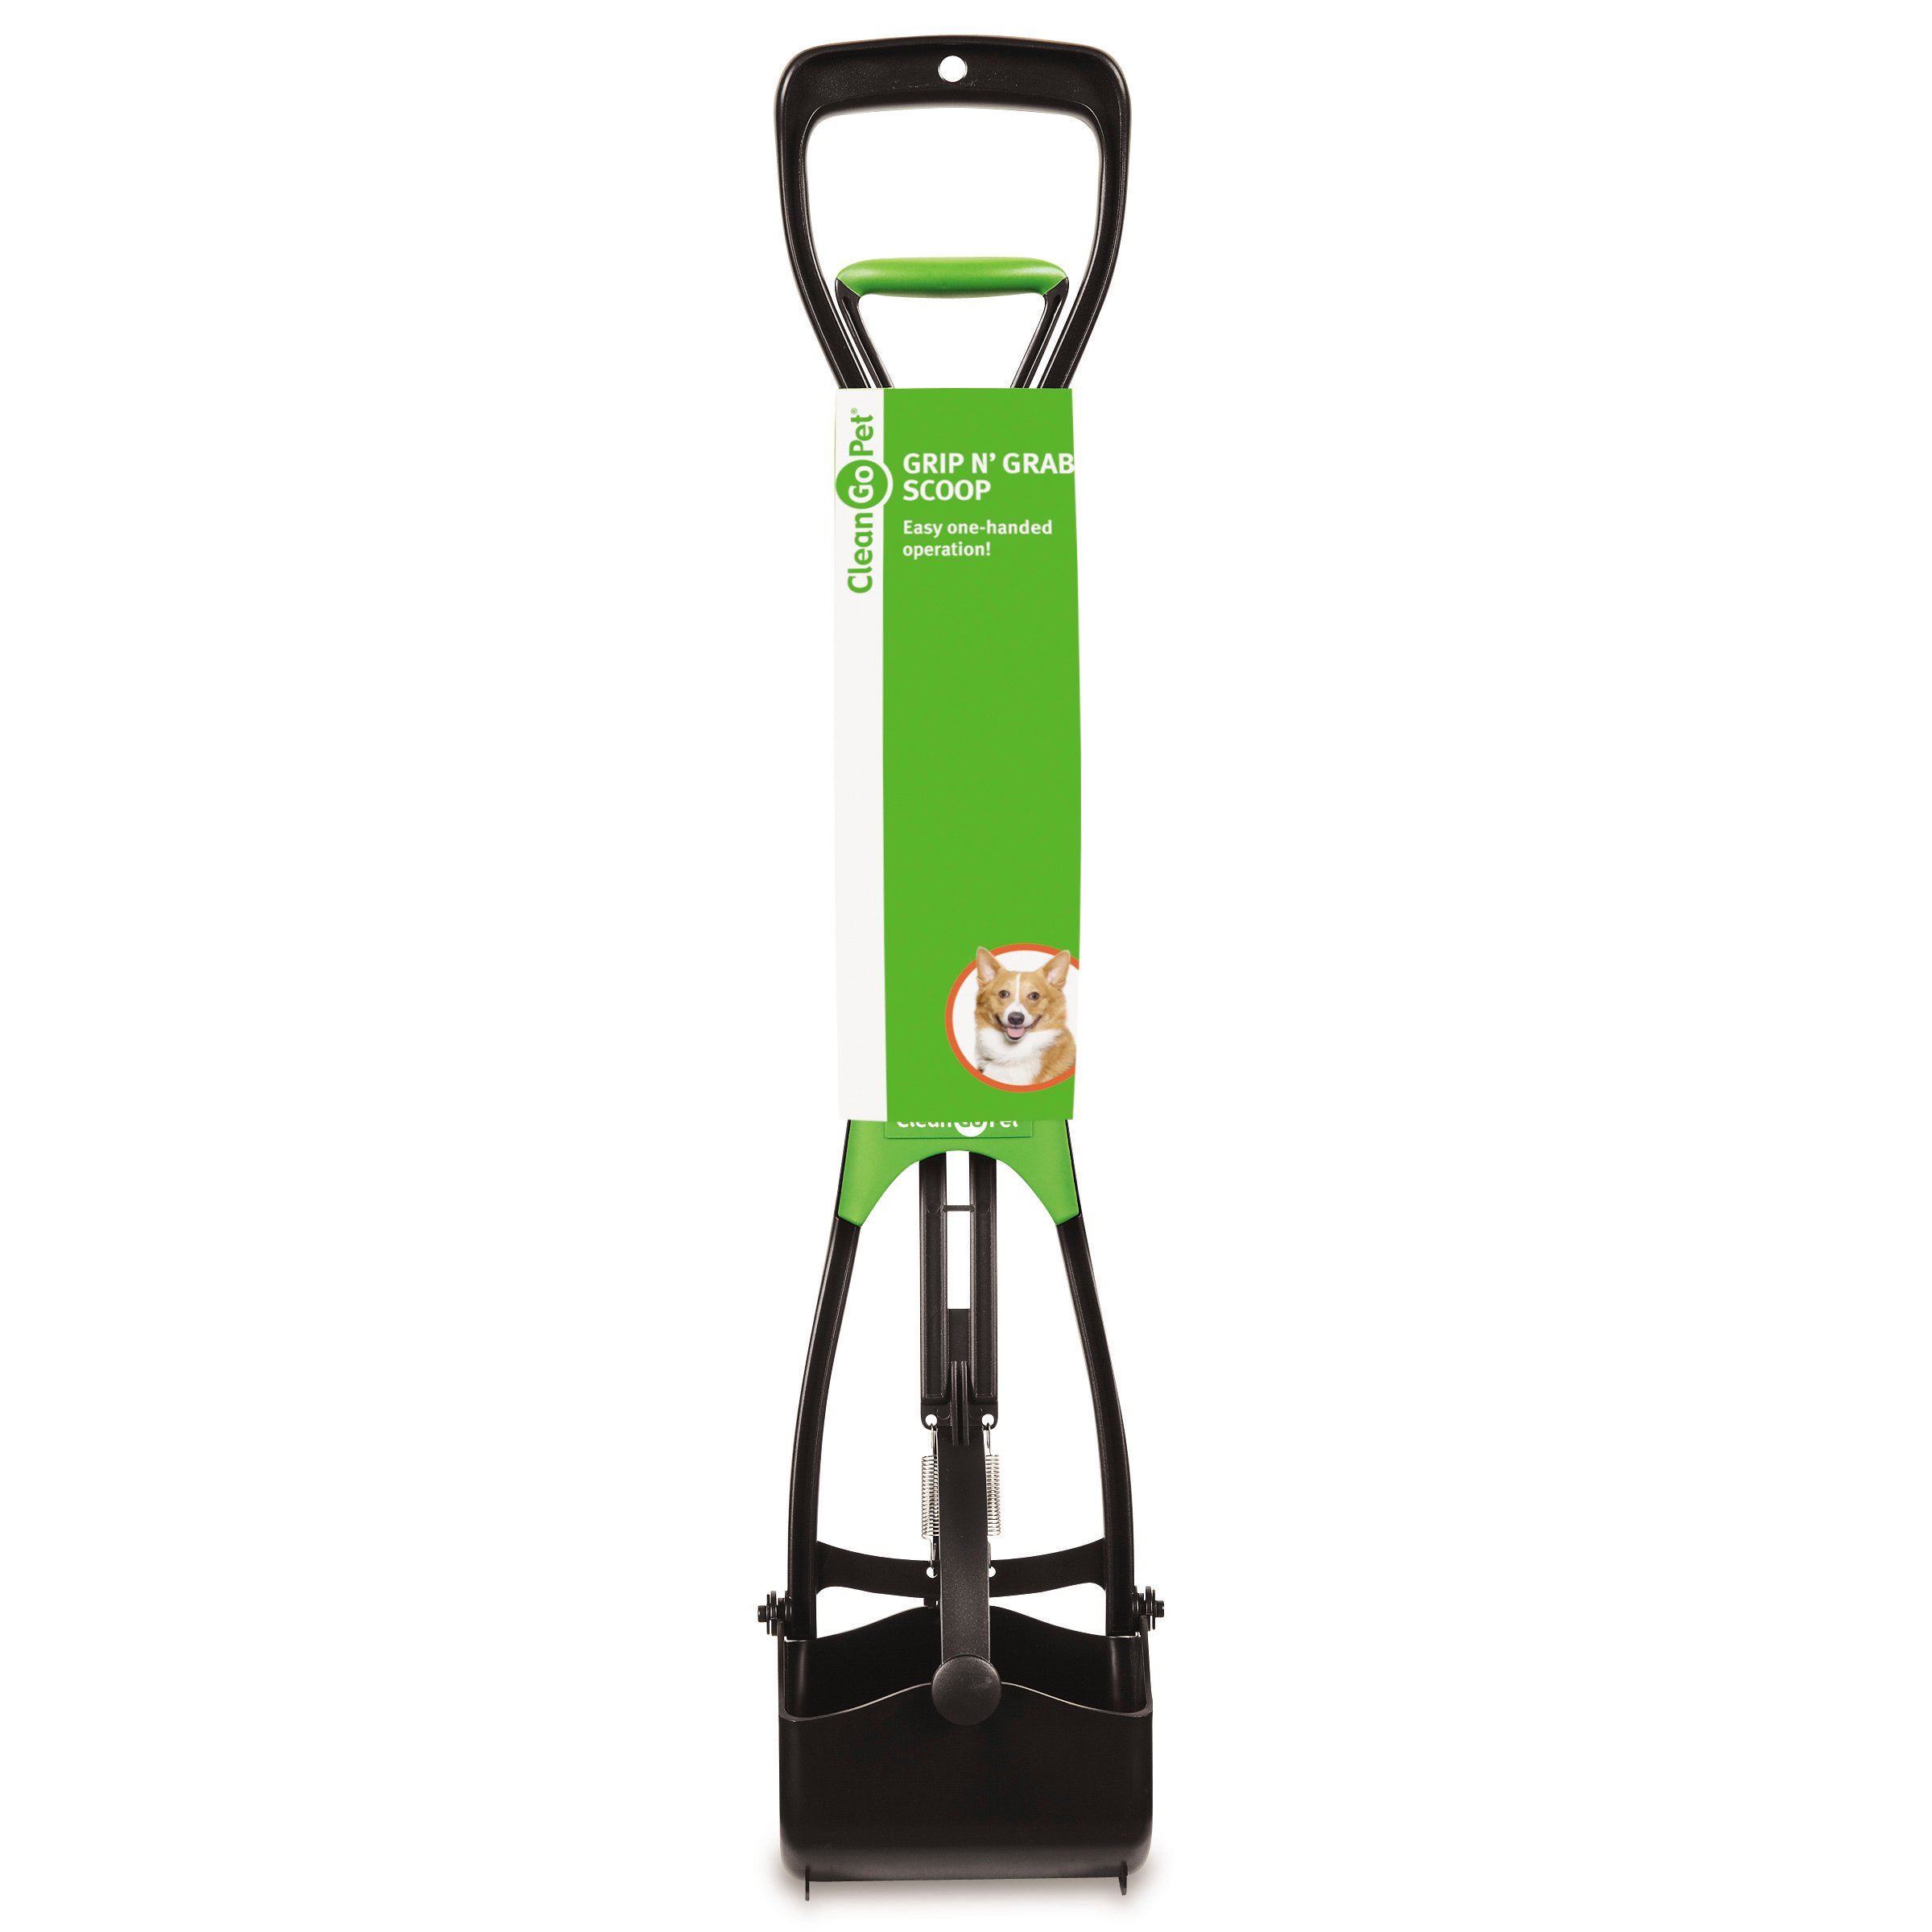 Clean Go Pet Grip-N-Grab Pet Waste Scoop with Double Spring-Action, Convenient One-Handed Operation by Clean Go